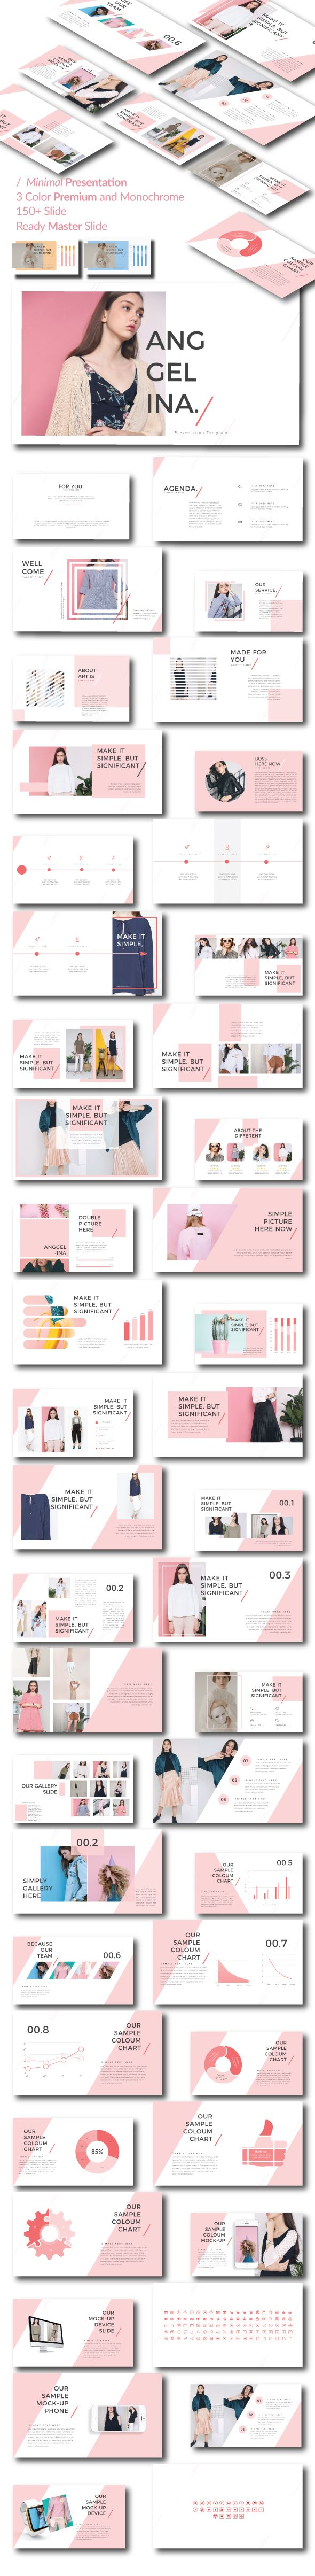 best 25+ powerpoint background design ideas on pinterest | ppt, Presentation templates